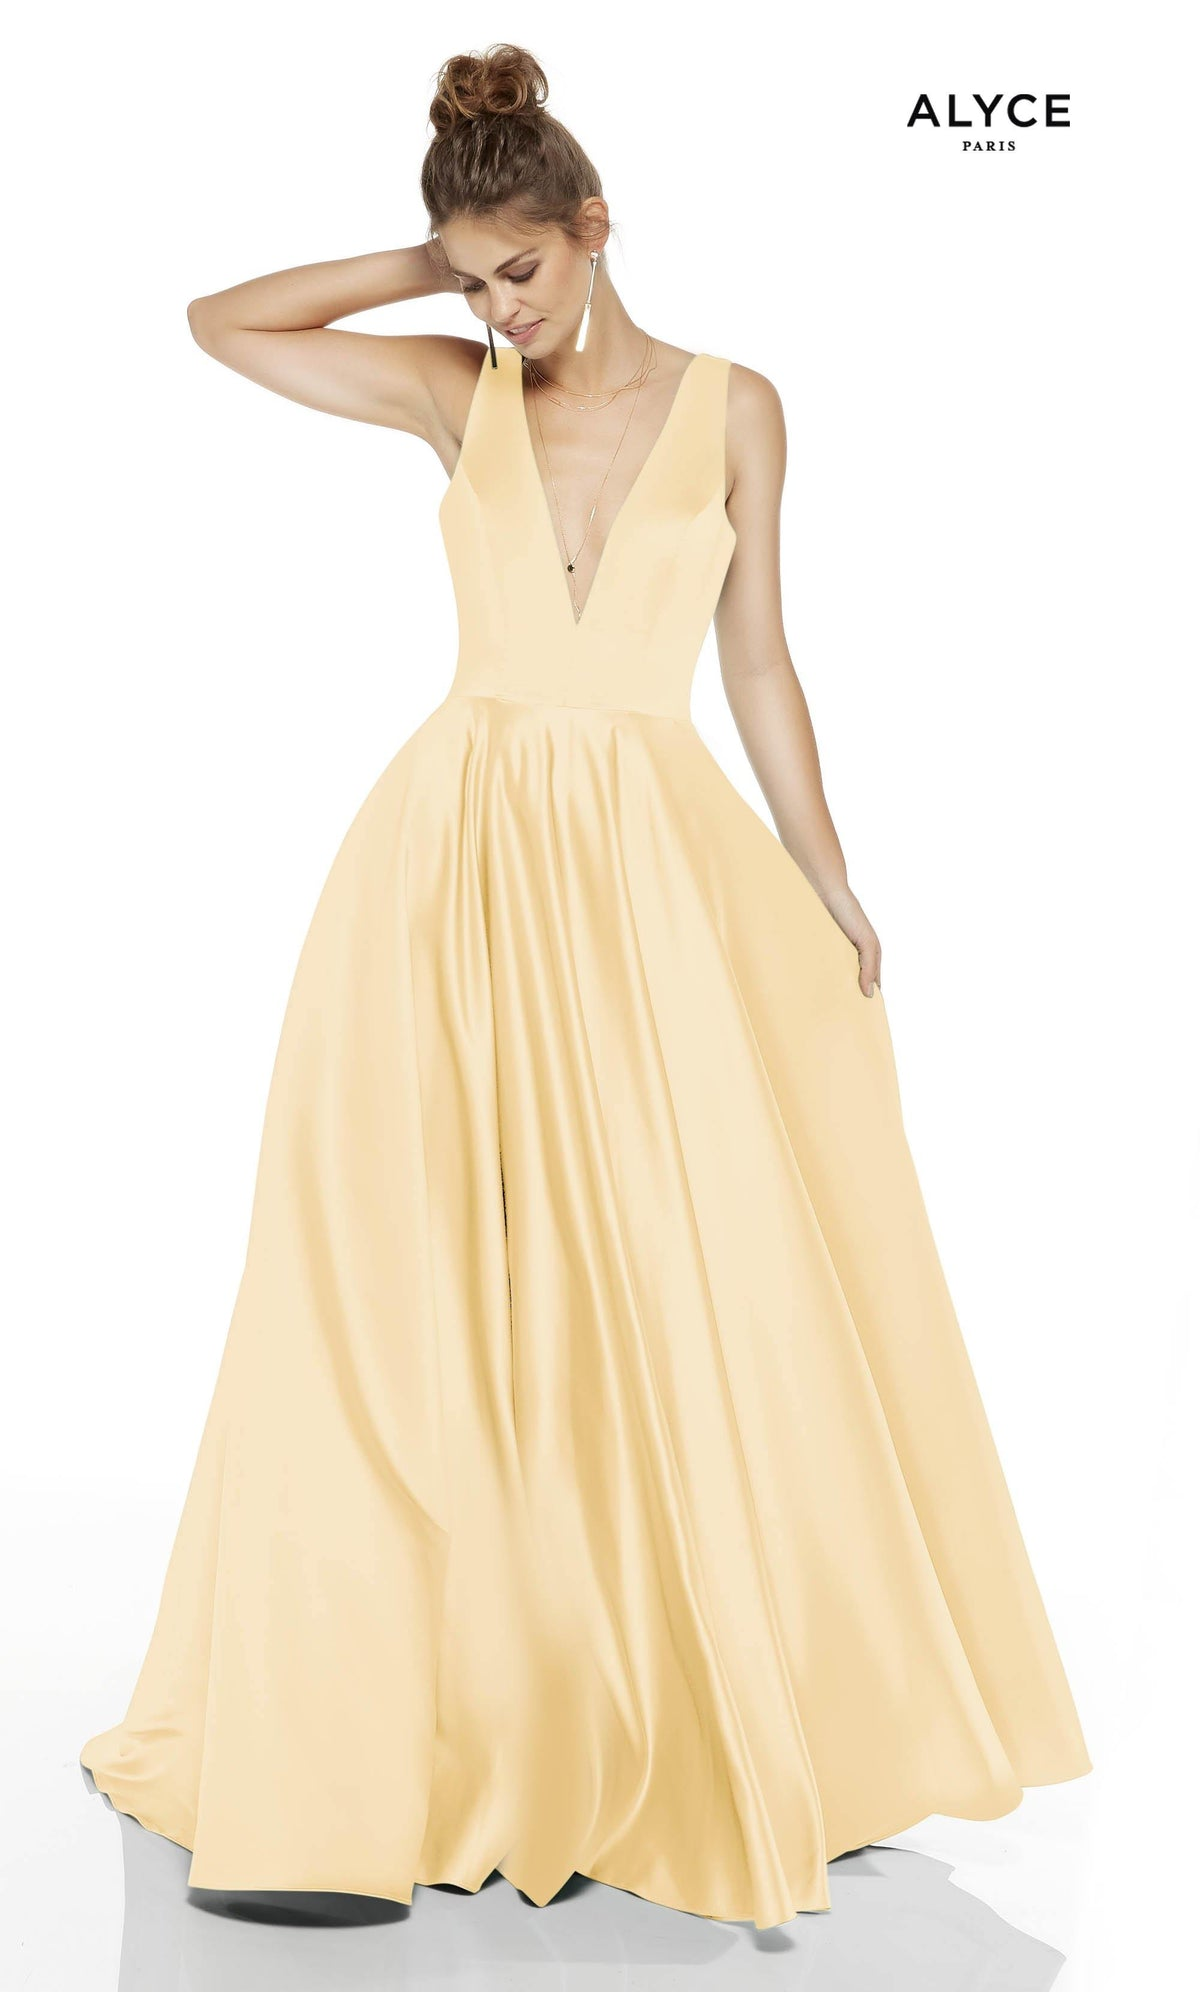 Light Yellow formal dress with a plunging neckline